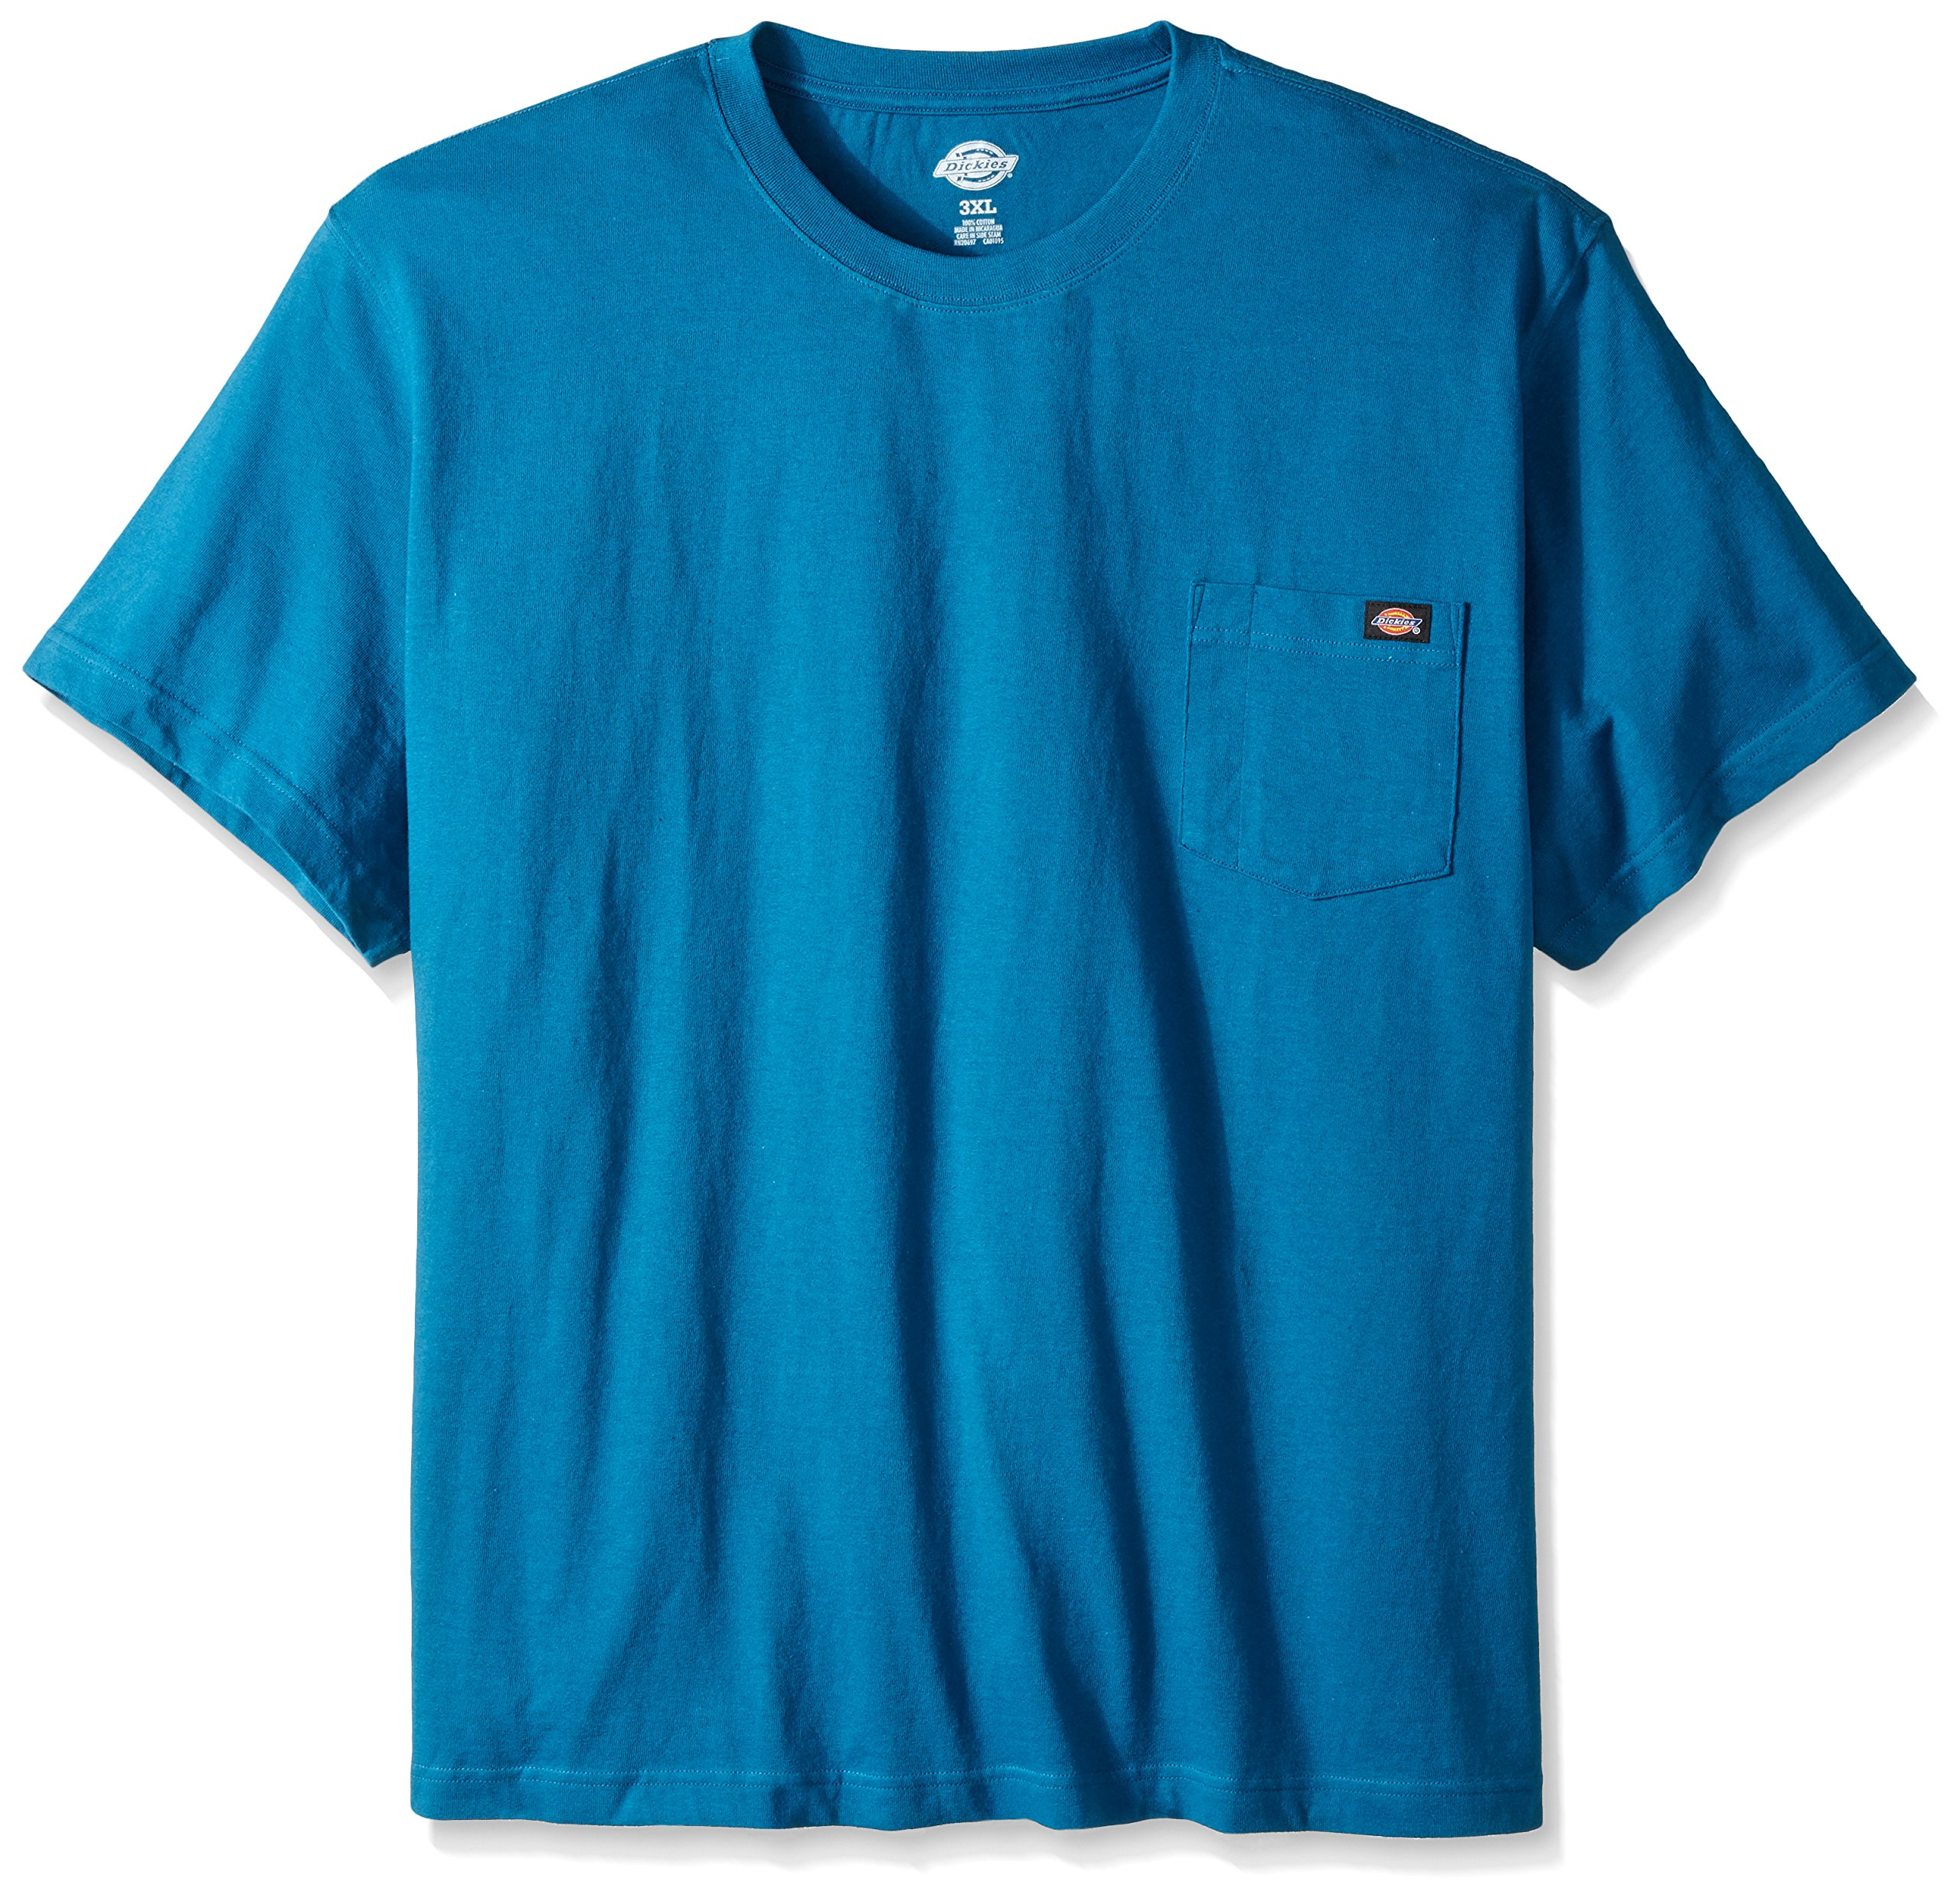 Dickie's Men's Big and Tall Short Sleeve Heavyweight Crew Neck Pocket T-Shirt, Southern Fall, X-Large Tall by Dickies